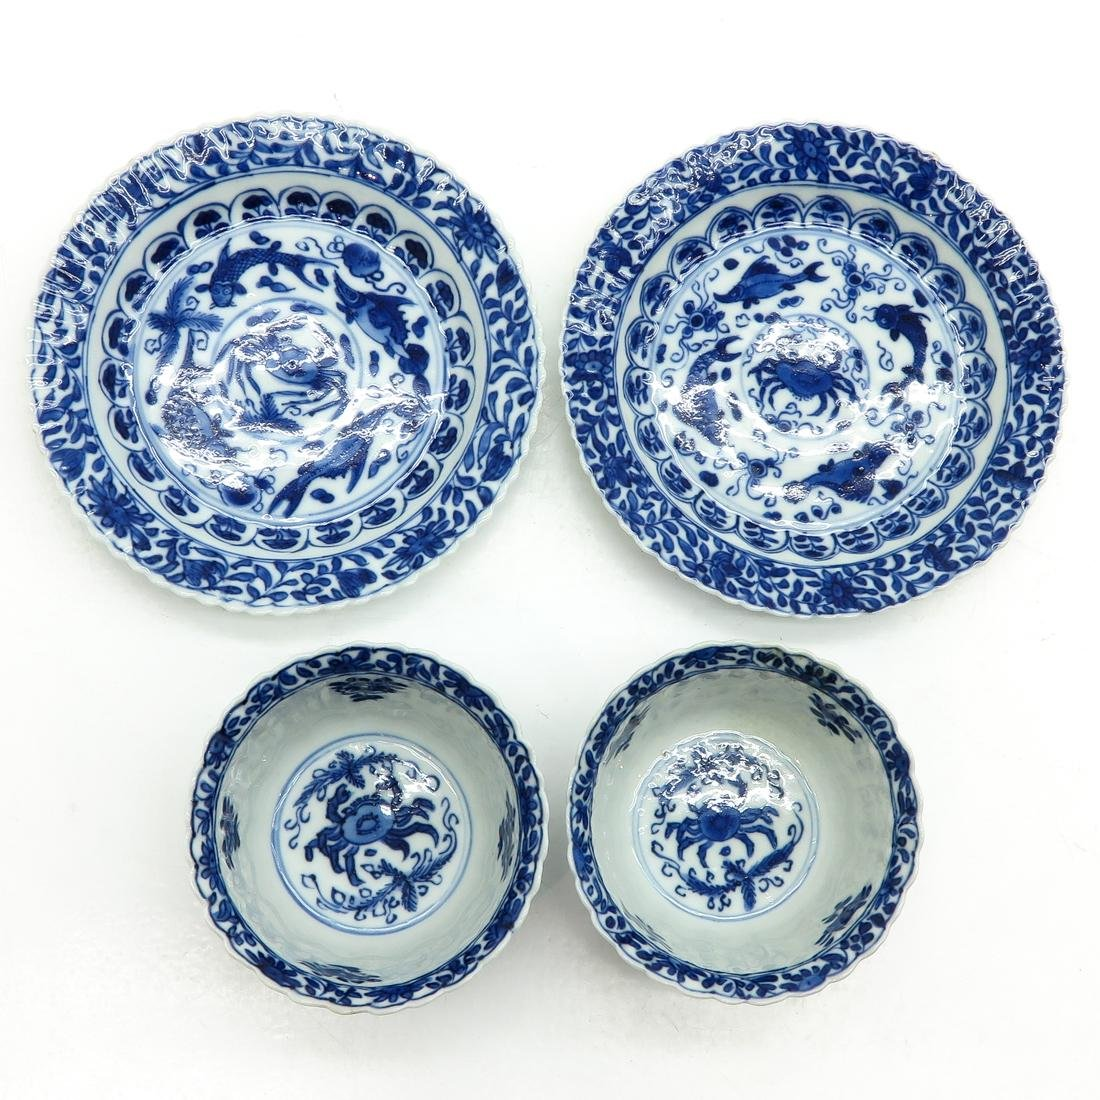 Lot of 2 Cups and Saucers - 5